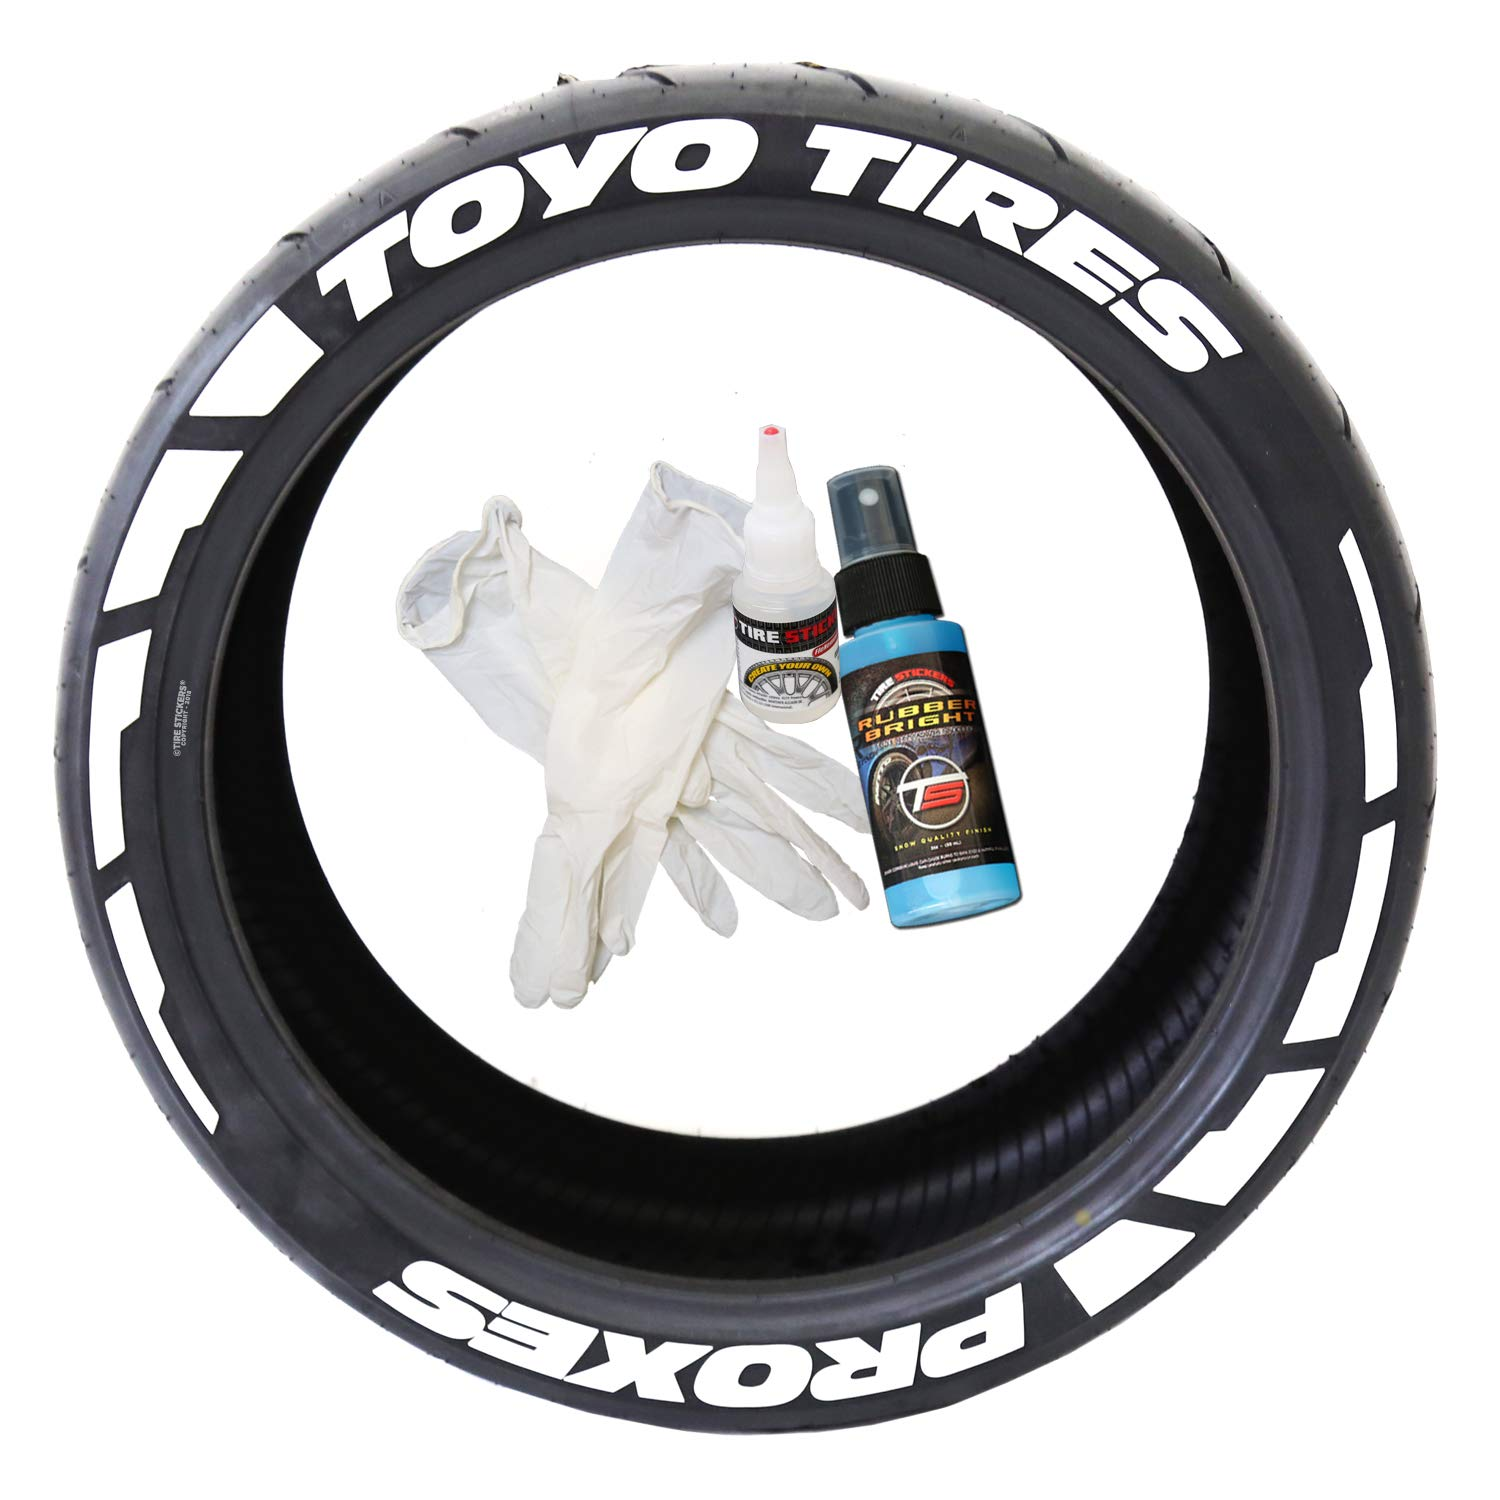 Tire Stickers Toyo Tires Proxes Frost Edition - DIY Permanent Rubber Tire Lettering Kit with Glue & 2oz Bottle Touch-Up Cleaner / 19-21 Inch Wheels / 1.25 Inches/White 8 Pack